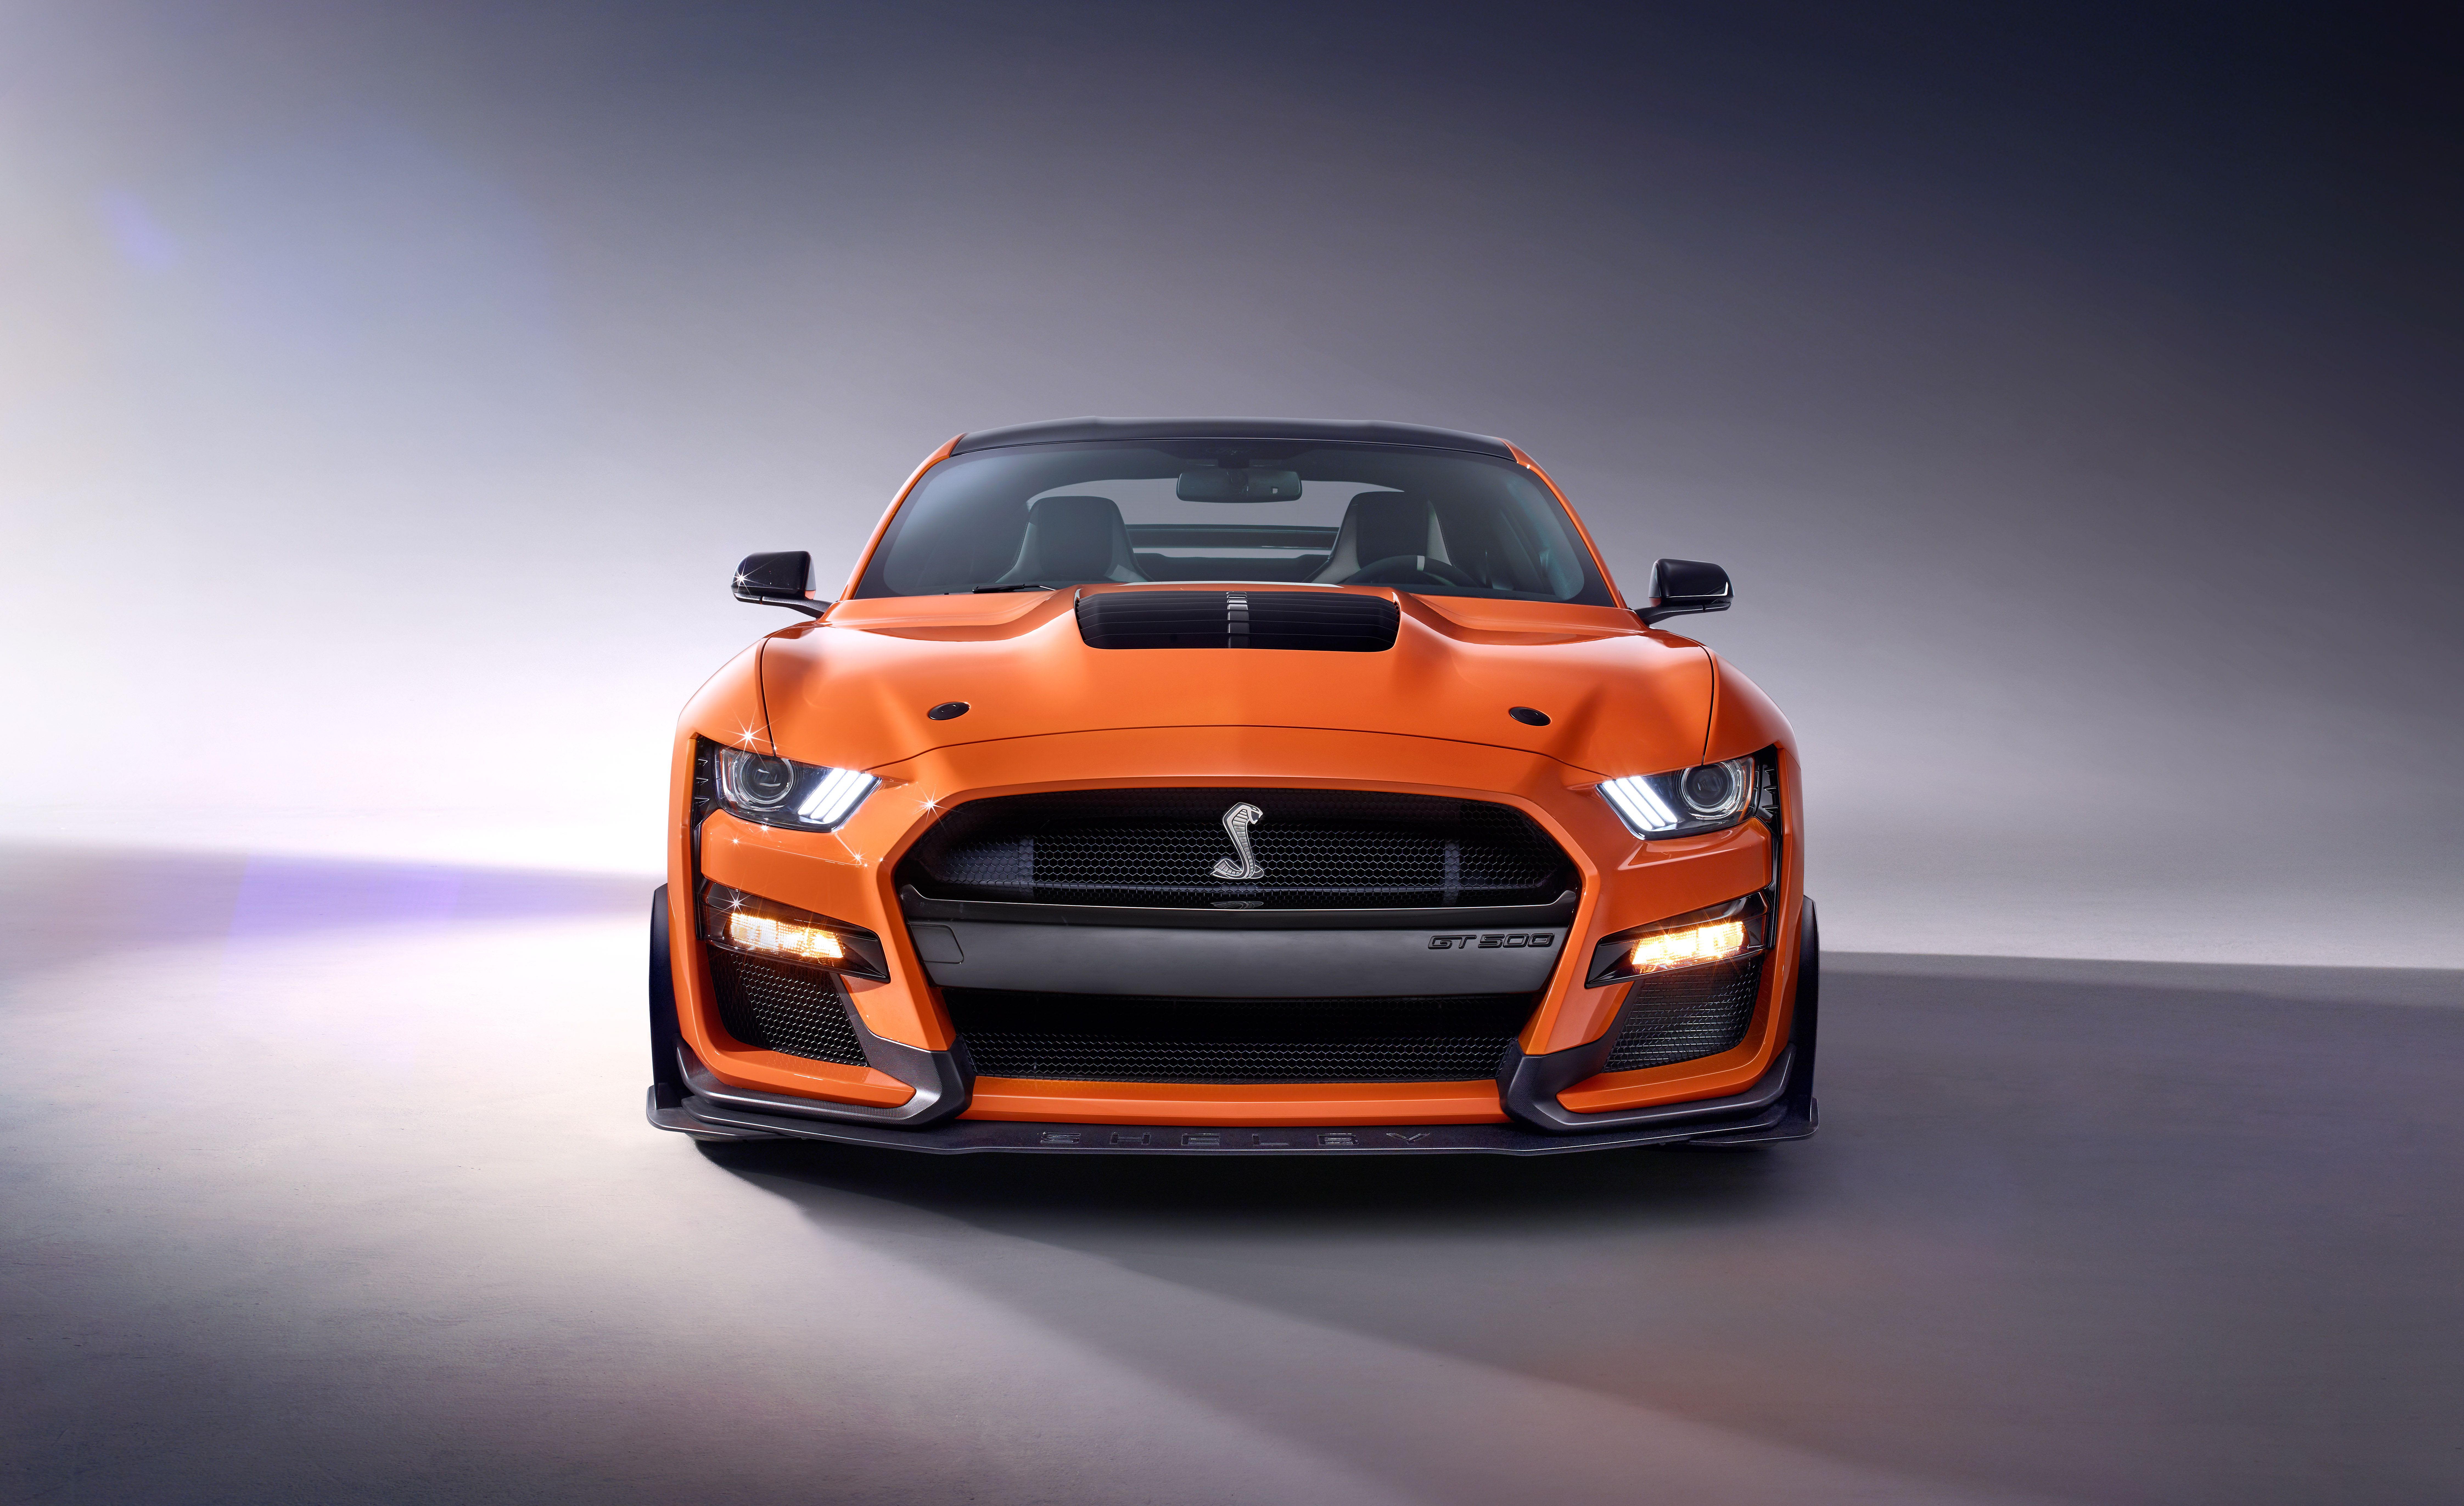 39 New 2020 Ford Mustang Shelby Gt 350 Performance and New Engine